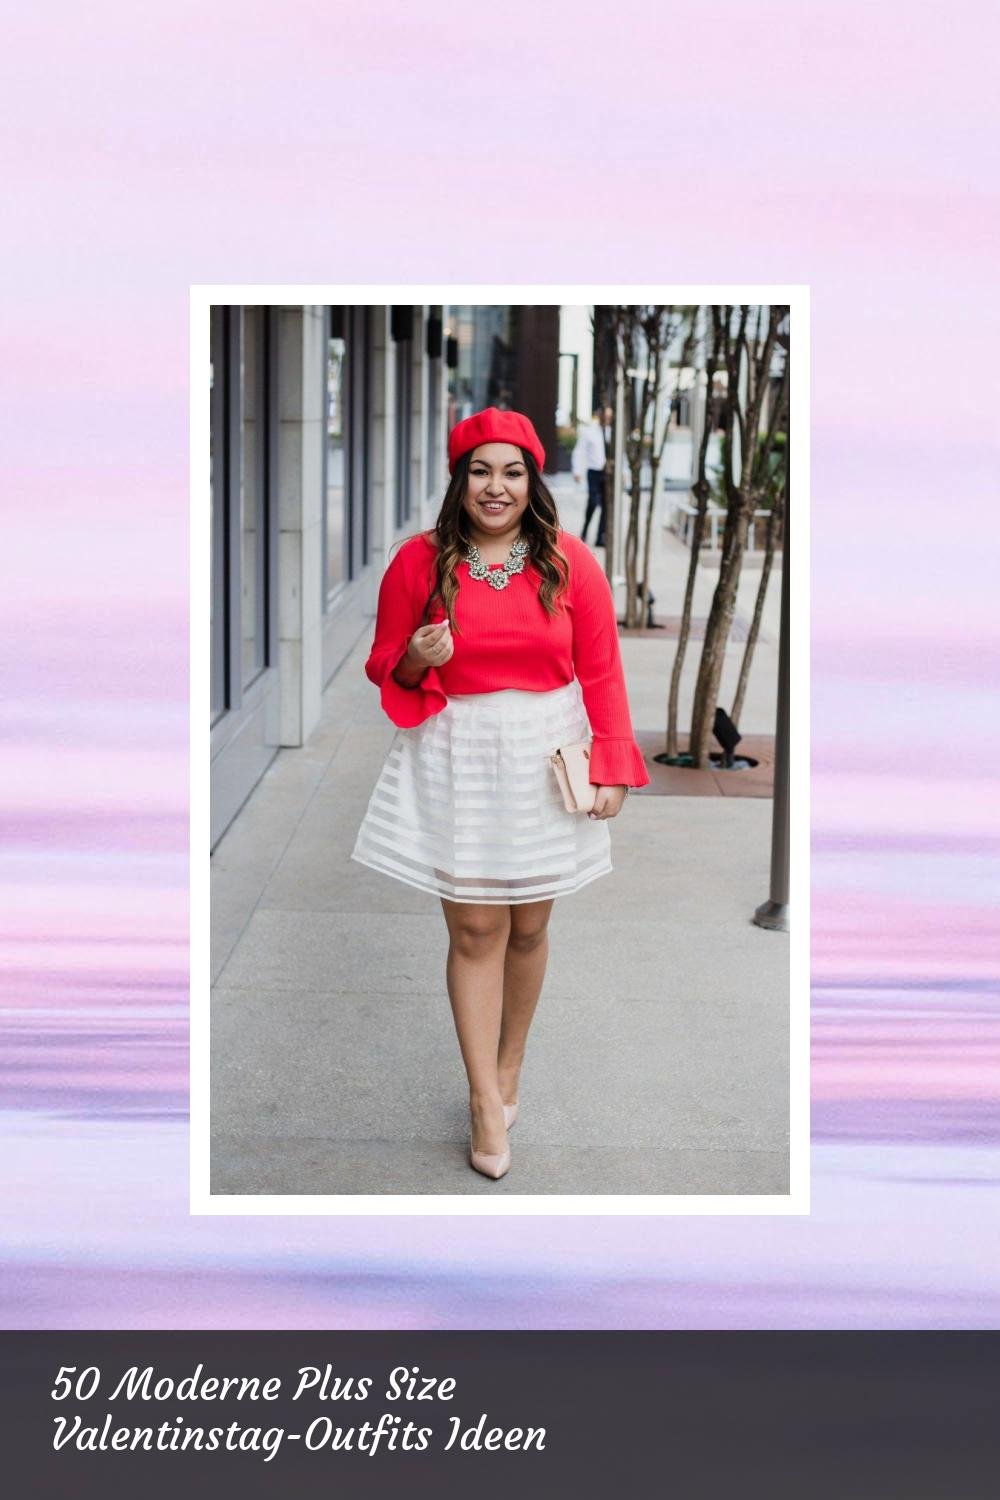 50 Moderne Plus Size Valentinstag-Outfits Ideen 26